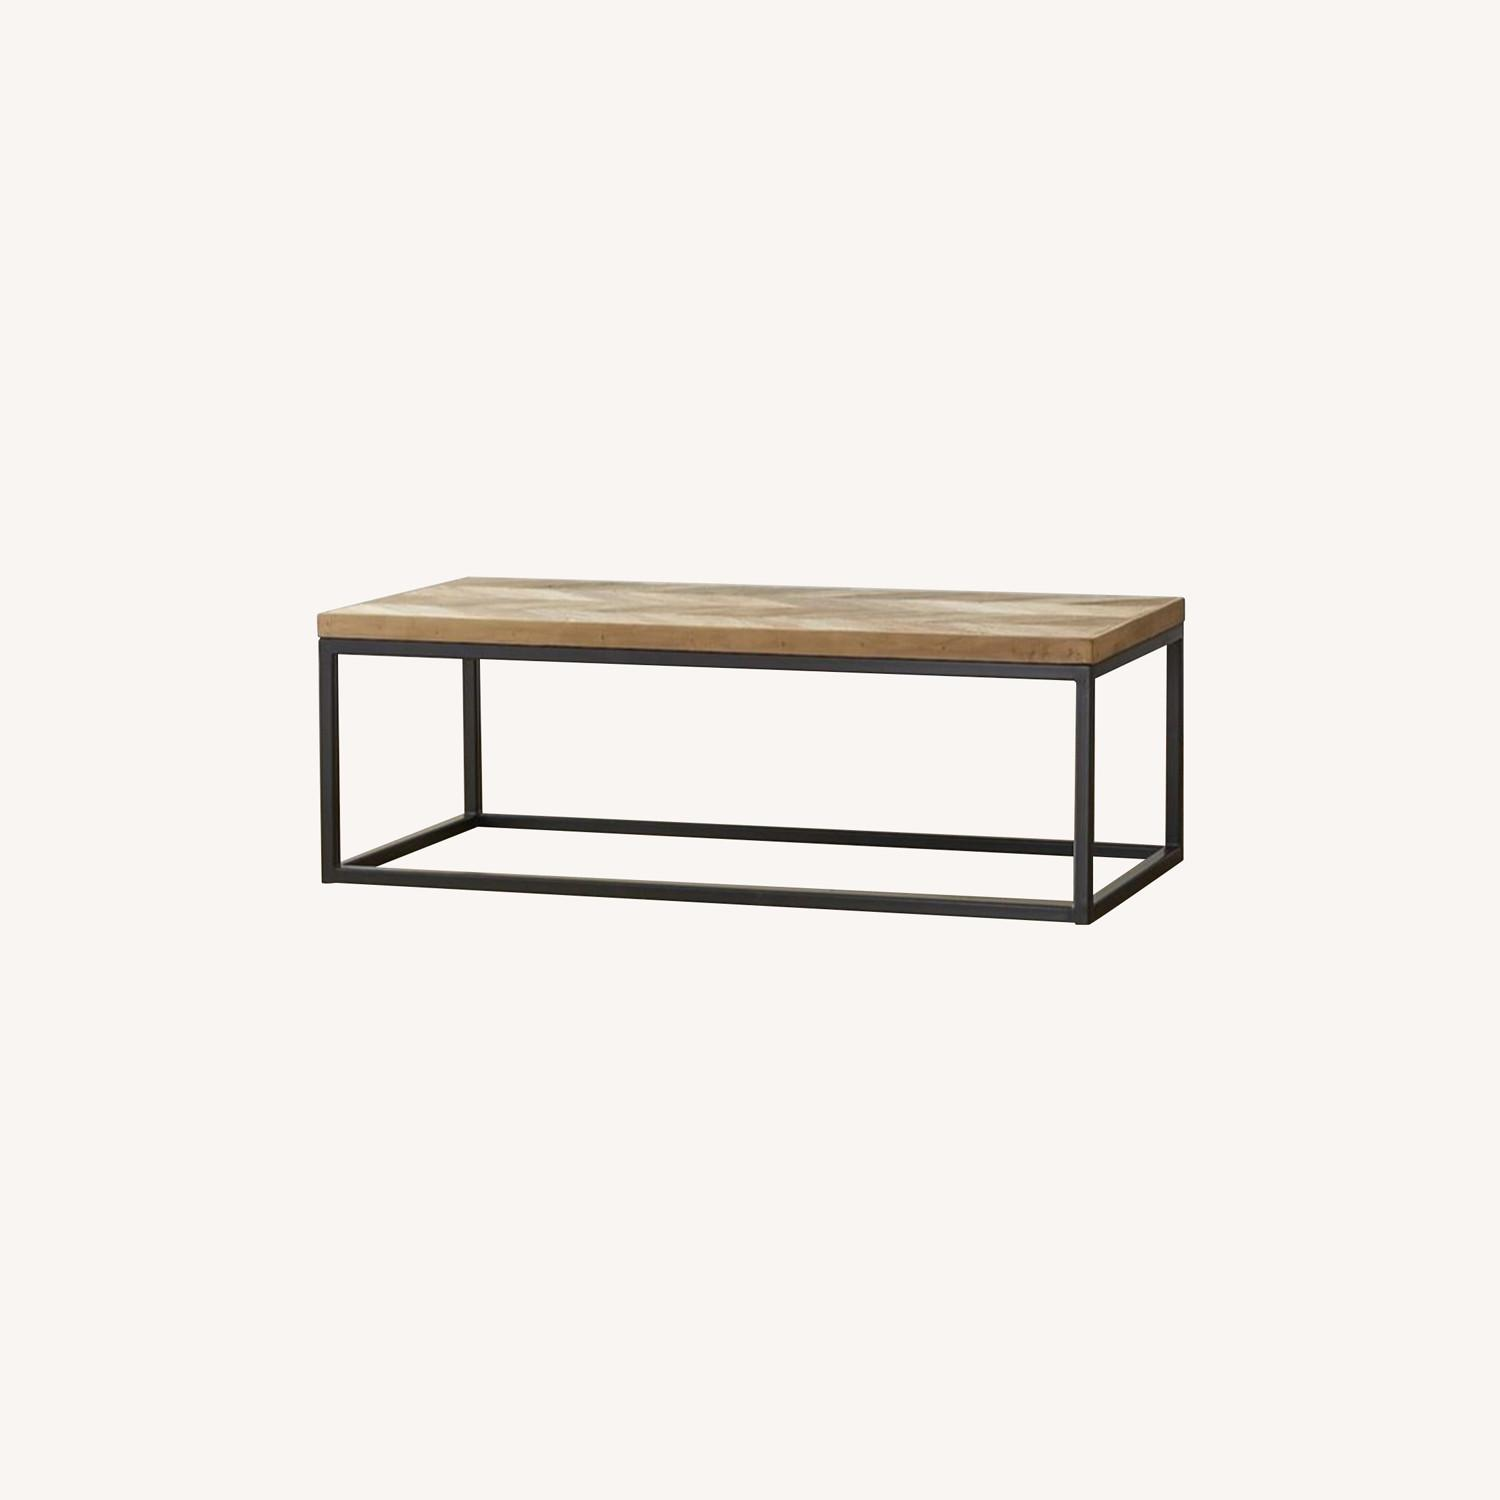 Crate & Barrel Mid Century Modern Coffee Table - image-0